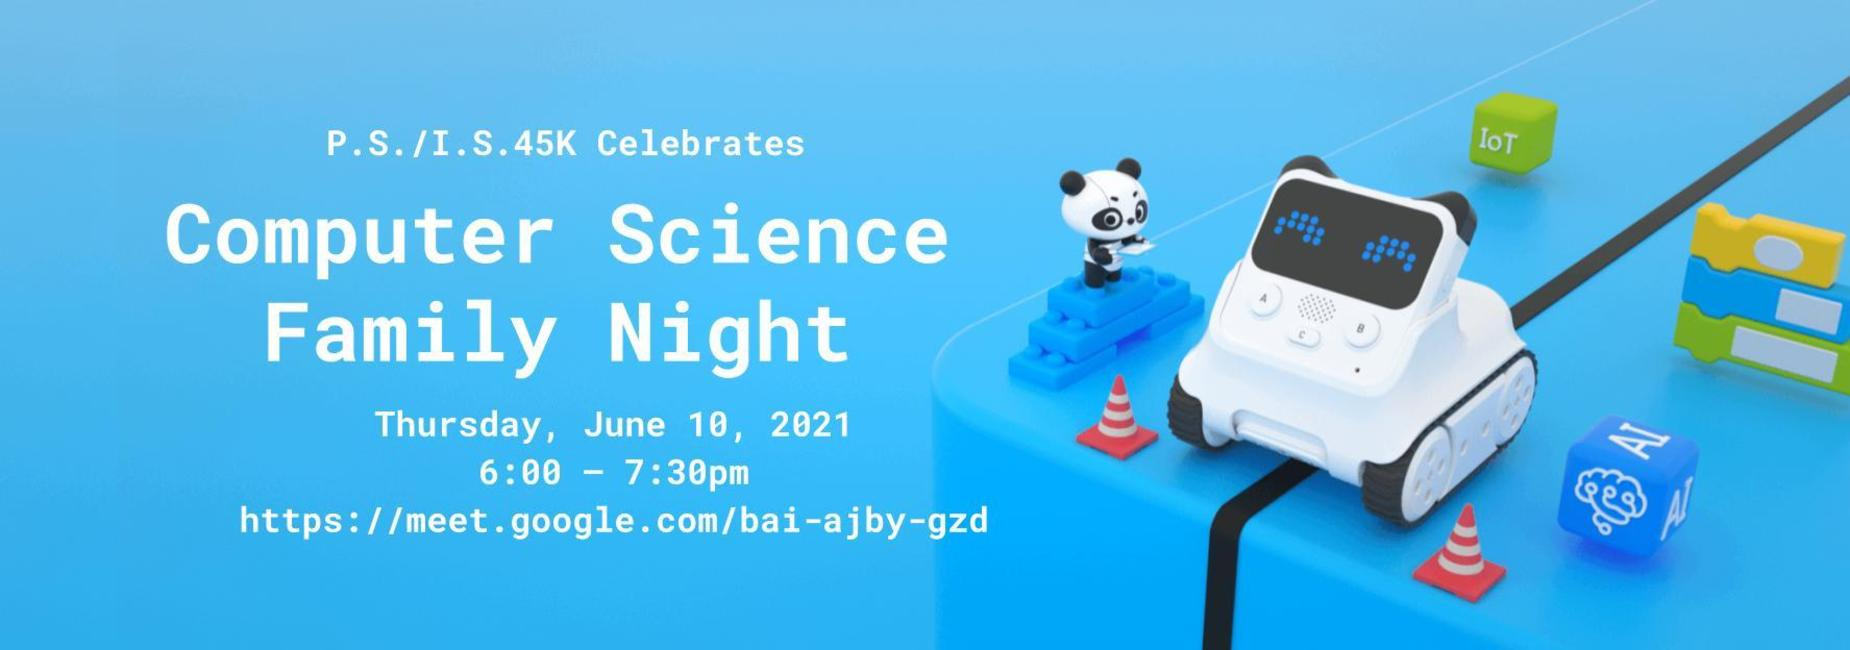 PS/IS 45K Celebrates Computer Science Family Night. On Thursday June 10th, 2021 at 6pm-7pm. Please click on the banner to join the google meets link.